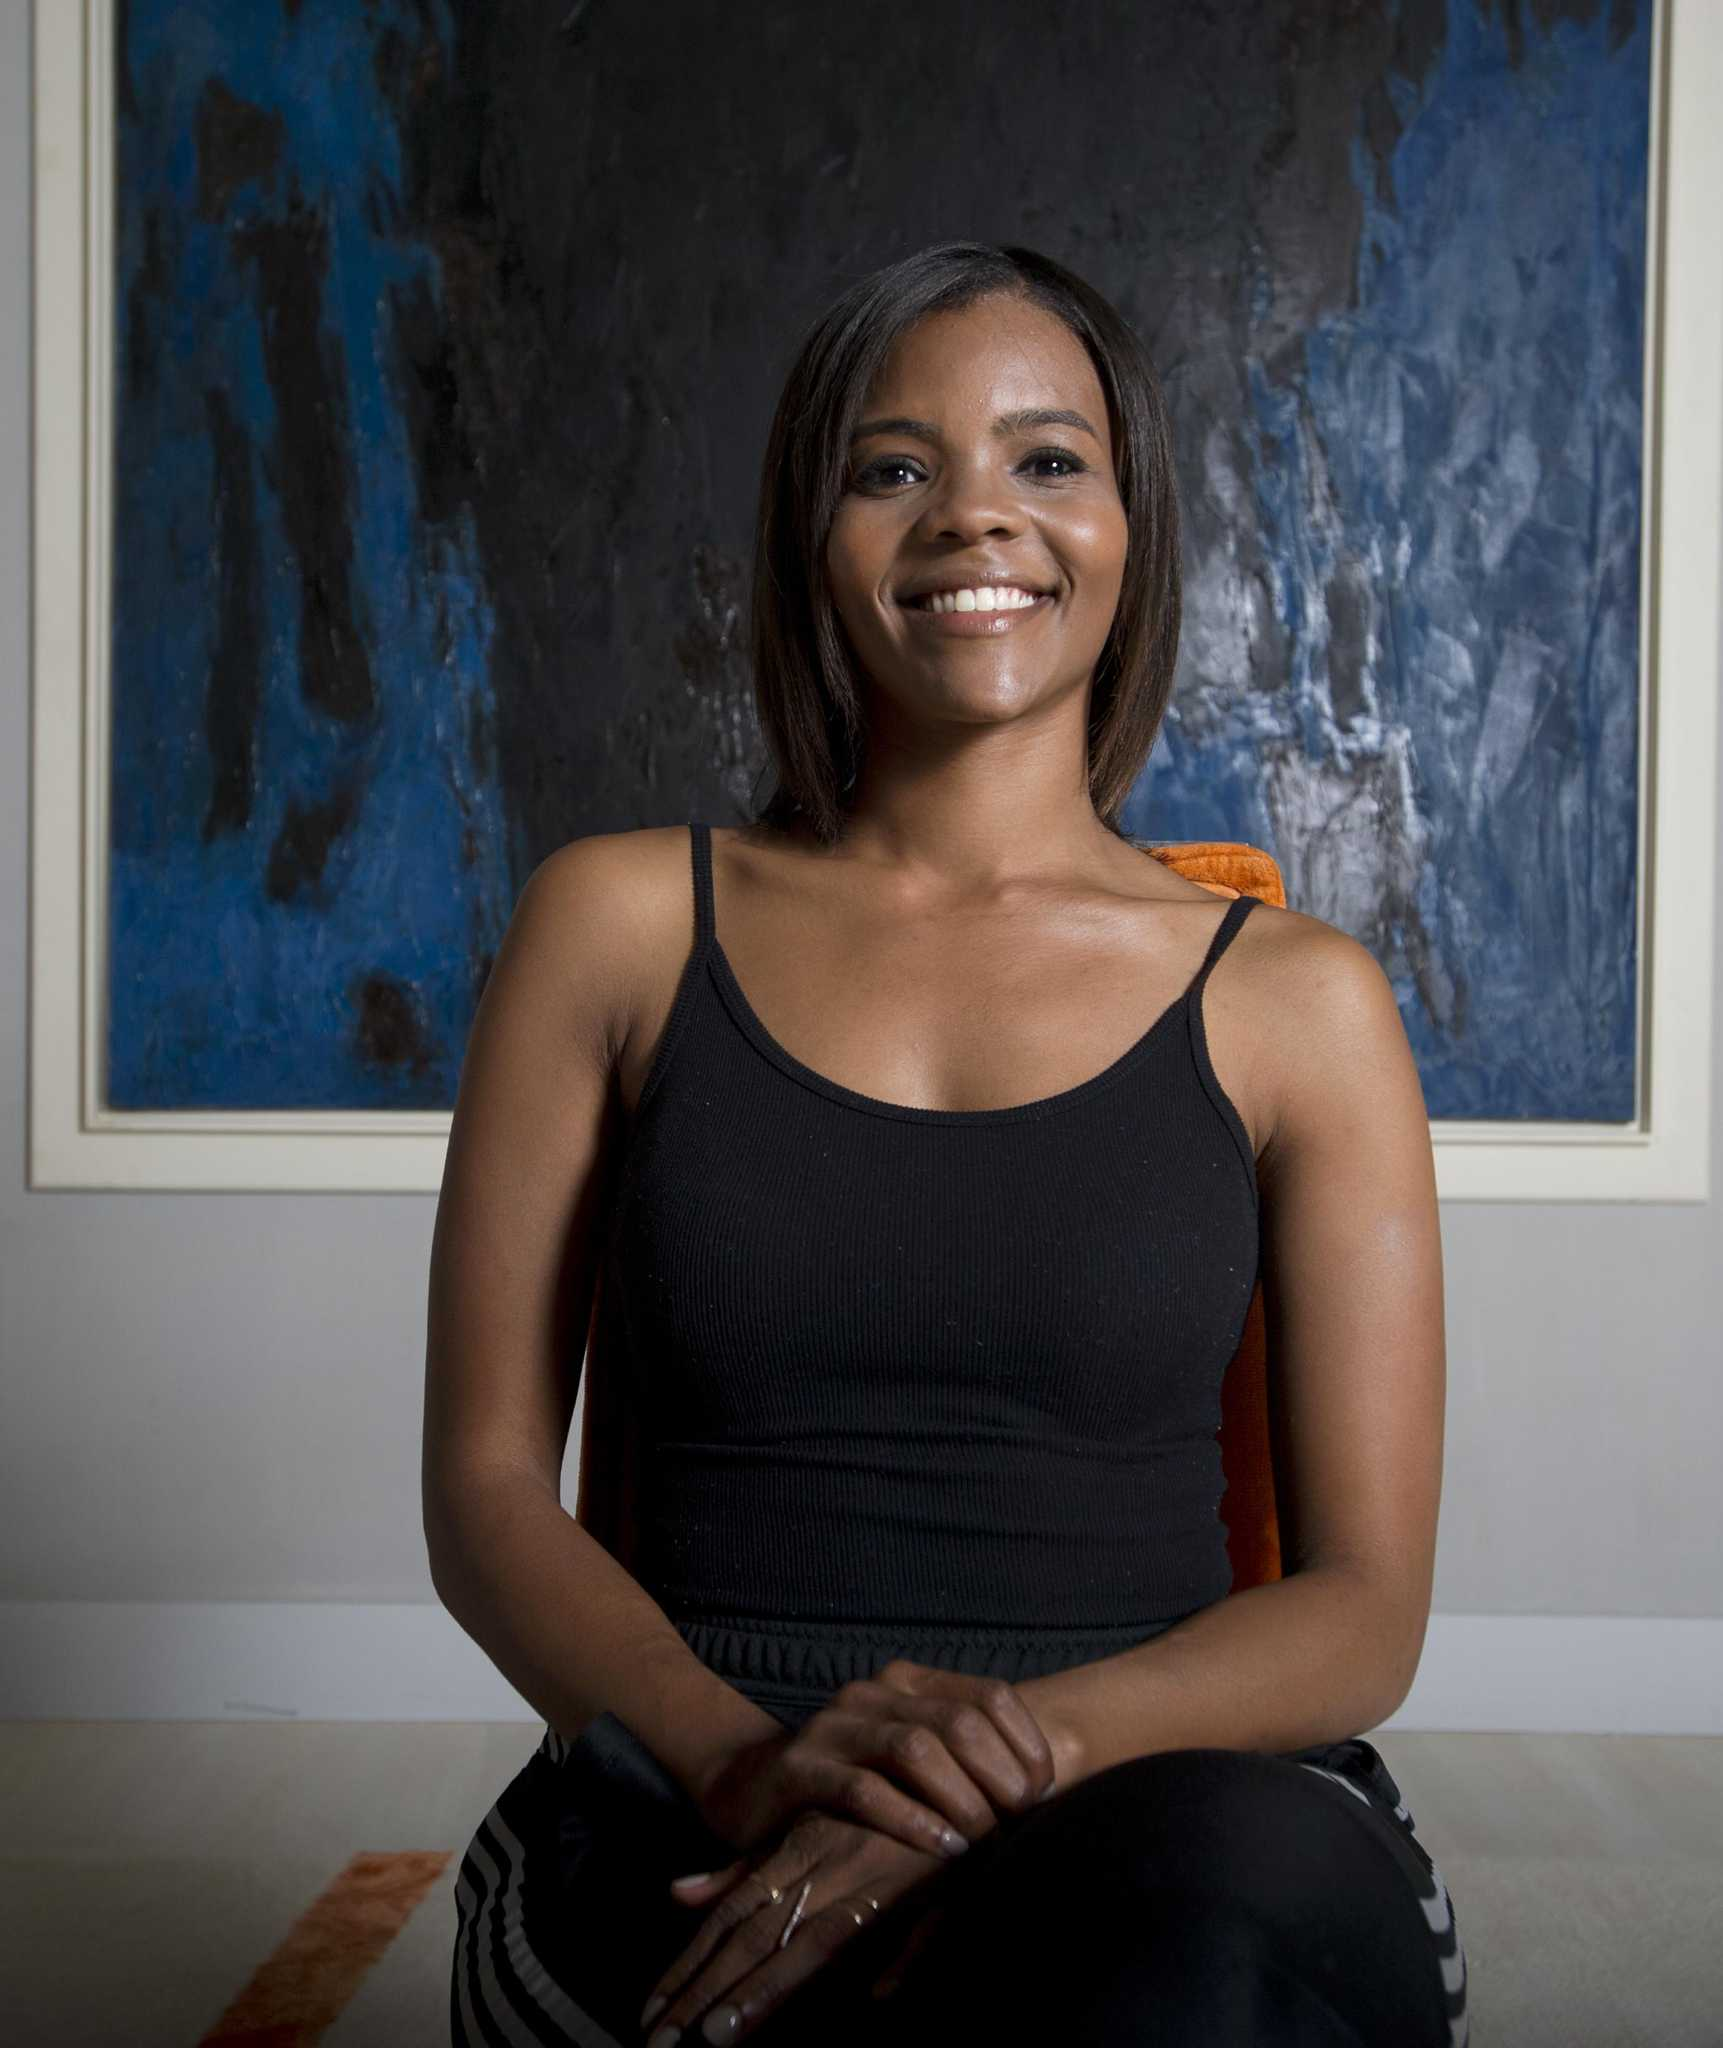 Rising Conservative Star Candace Owens Is Slammed Over Her Newly